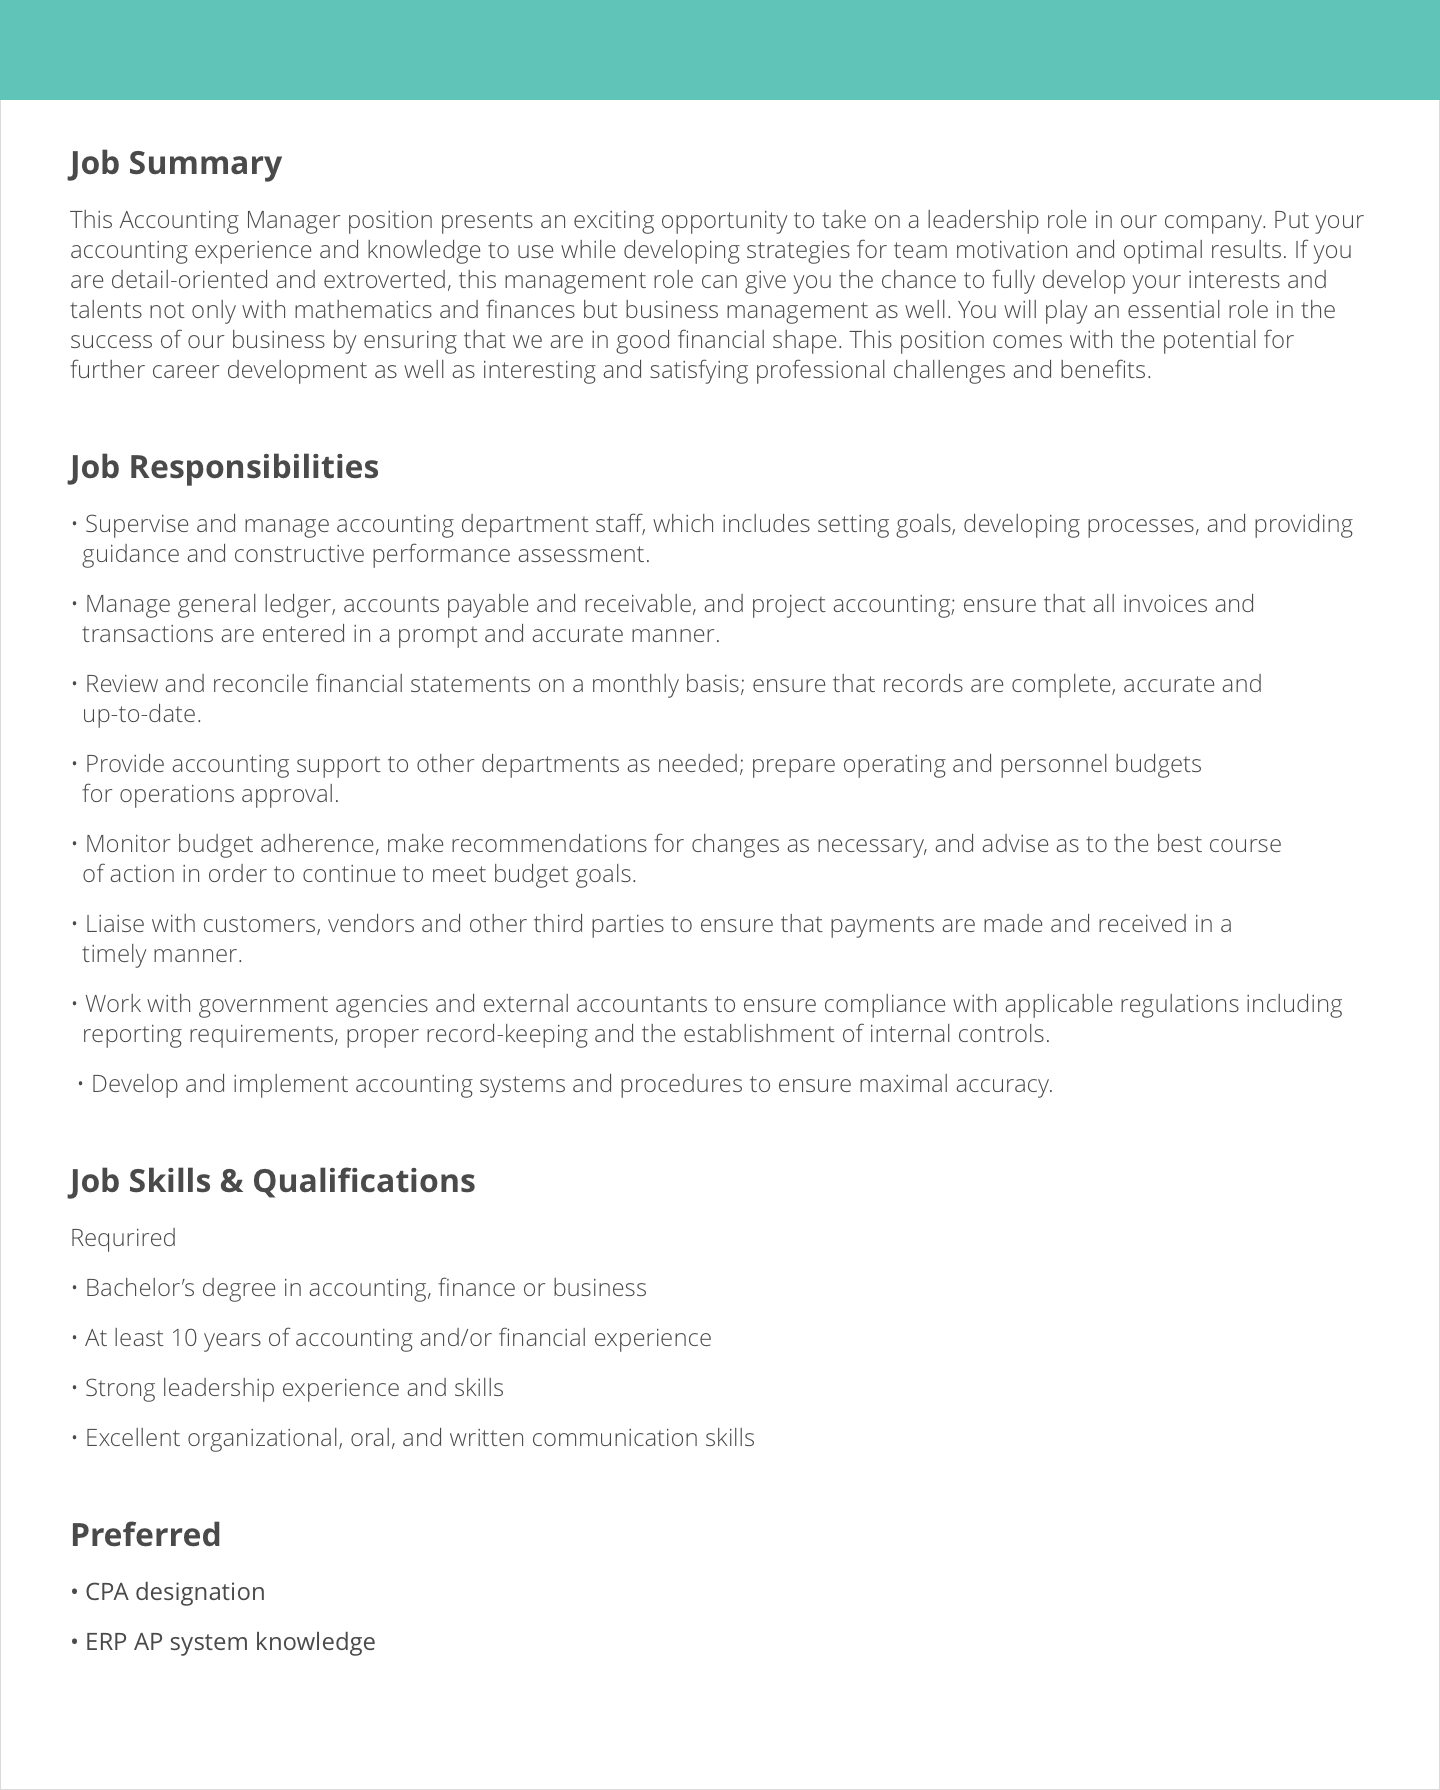 Job Description Samples & Examples LiveCareer